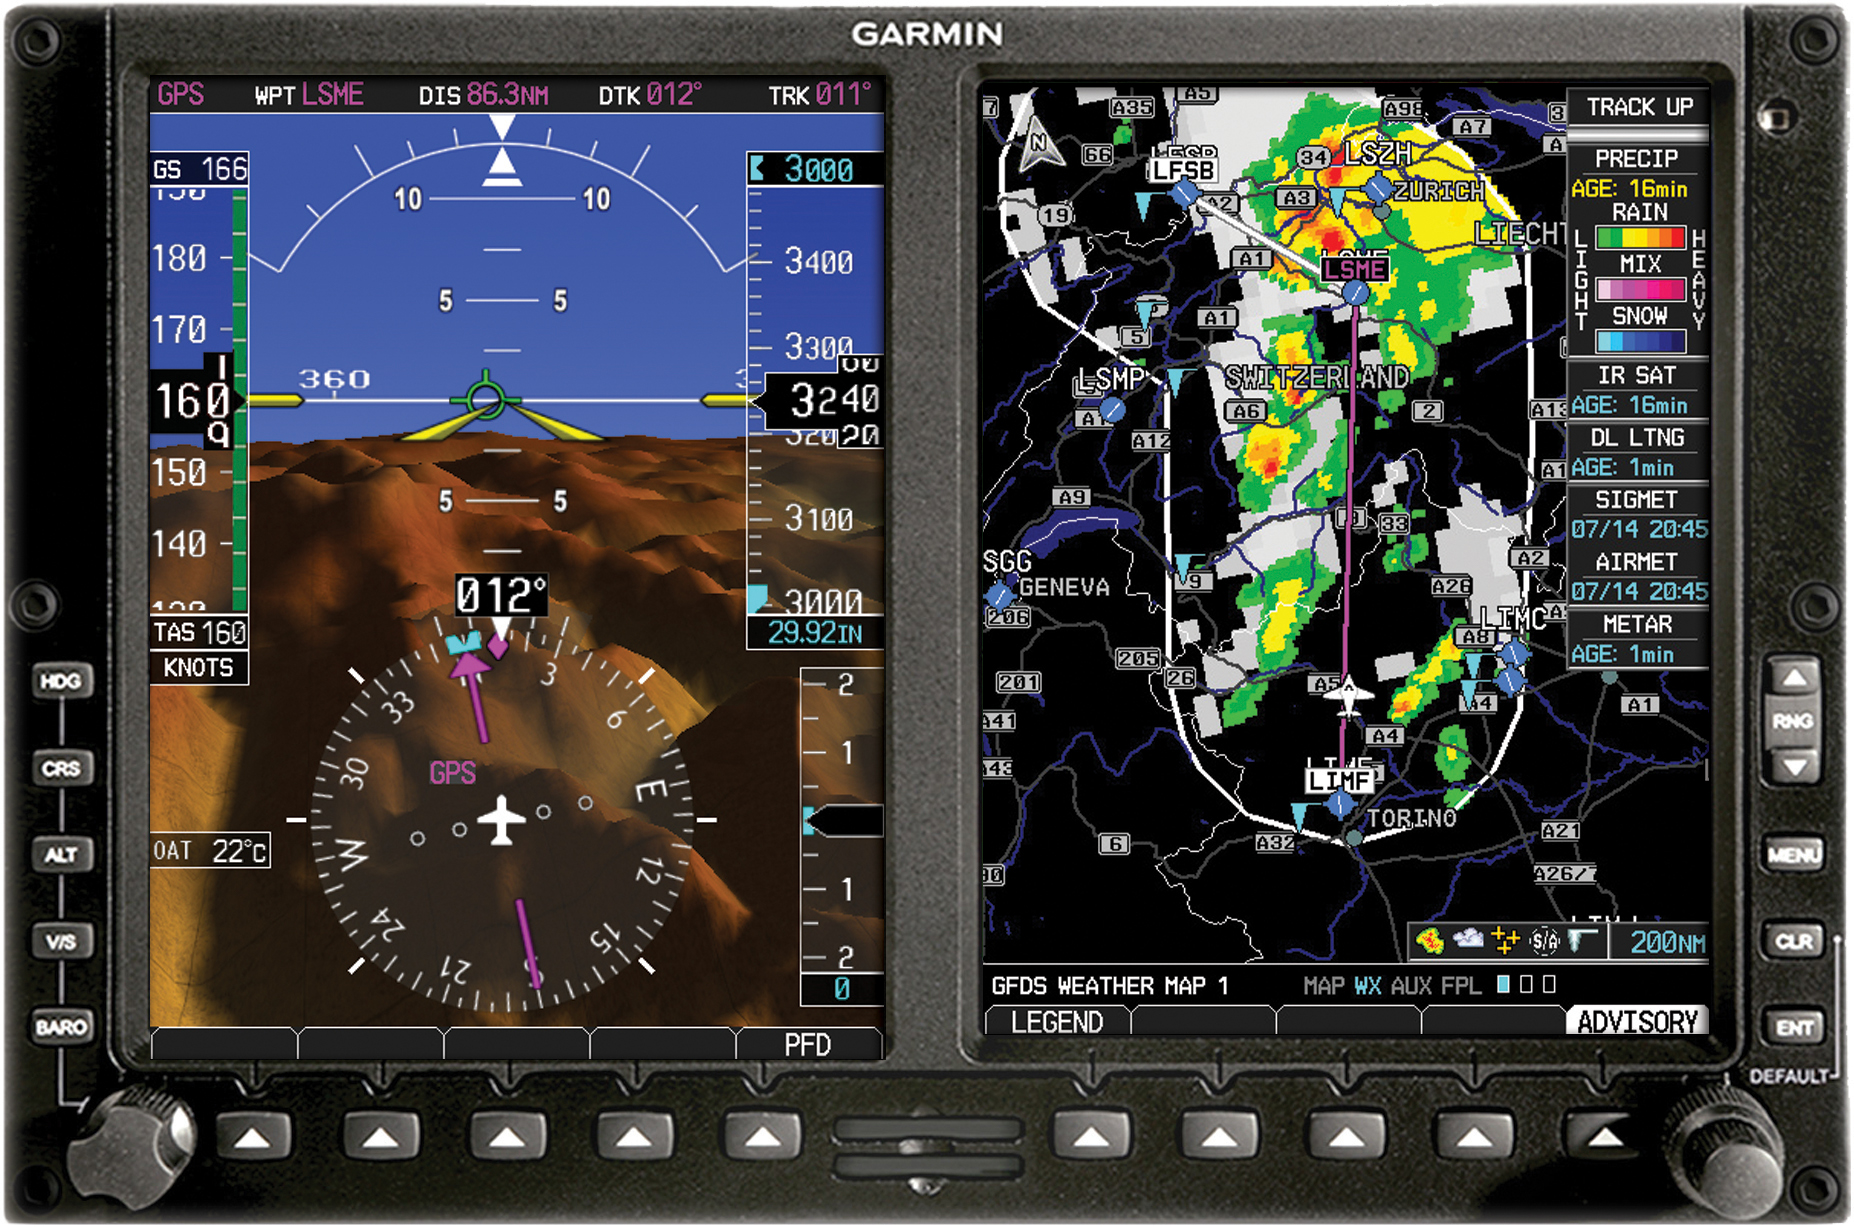 Garmin G600 PFD/MFD with Synthetic Vision. Click to enlarge.